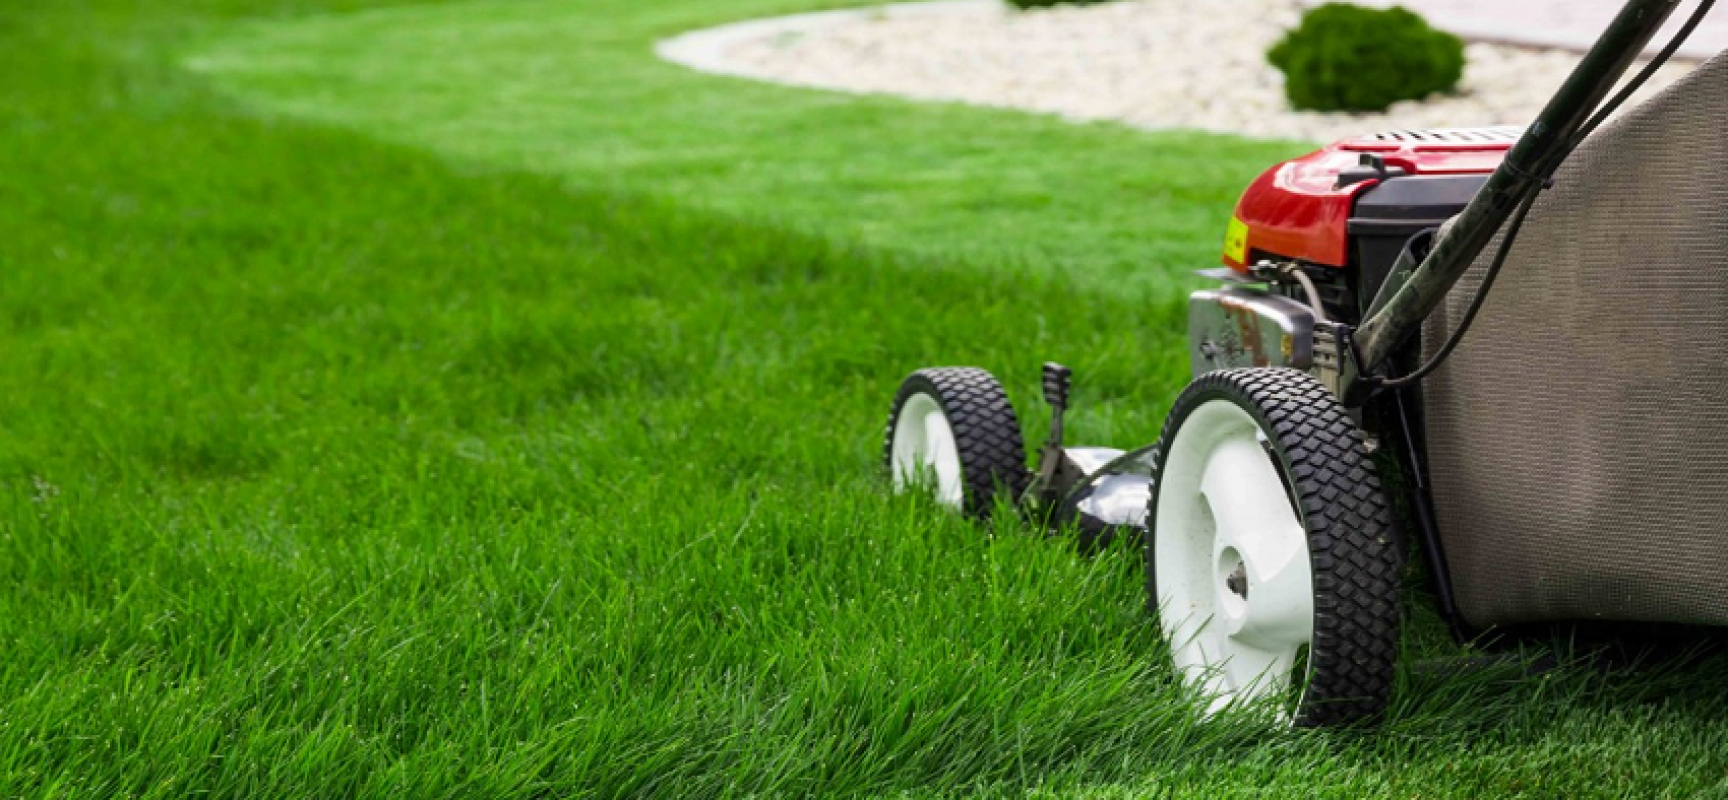 TruGreen Lawn Care Provides Top Tips on Finding a Lawn Service